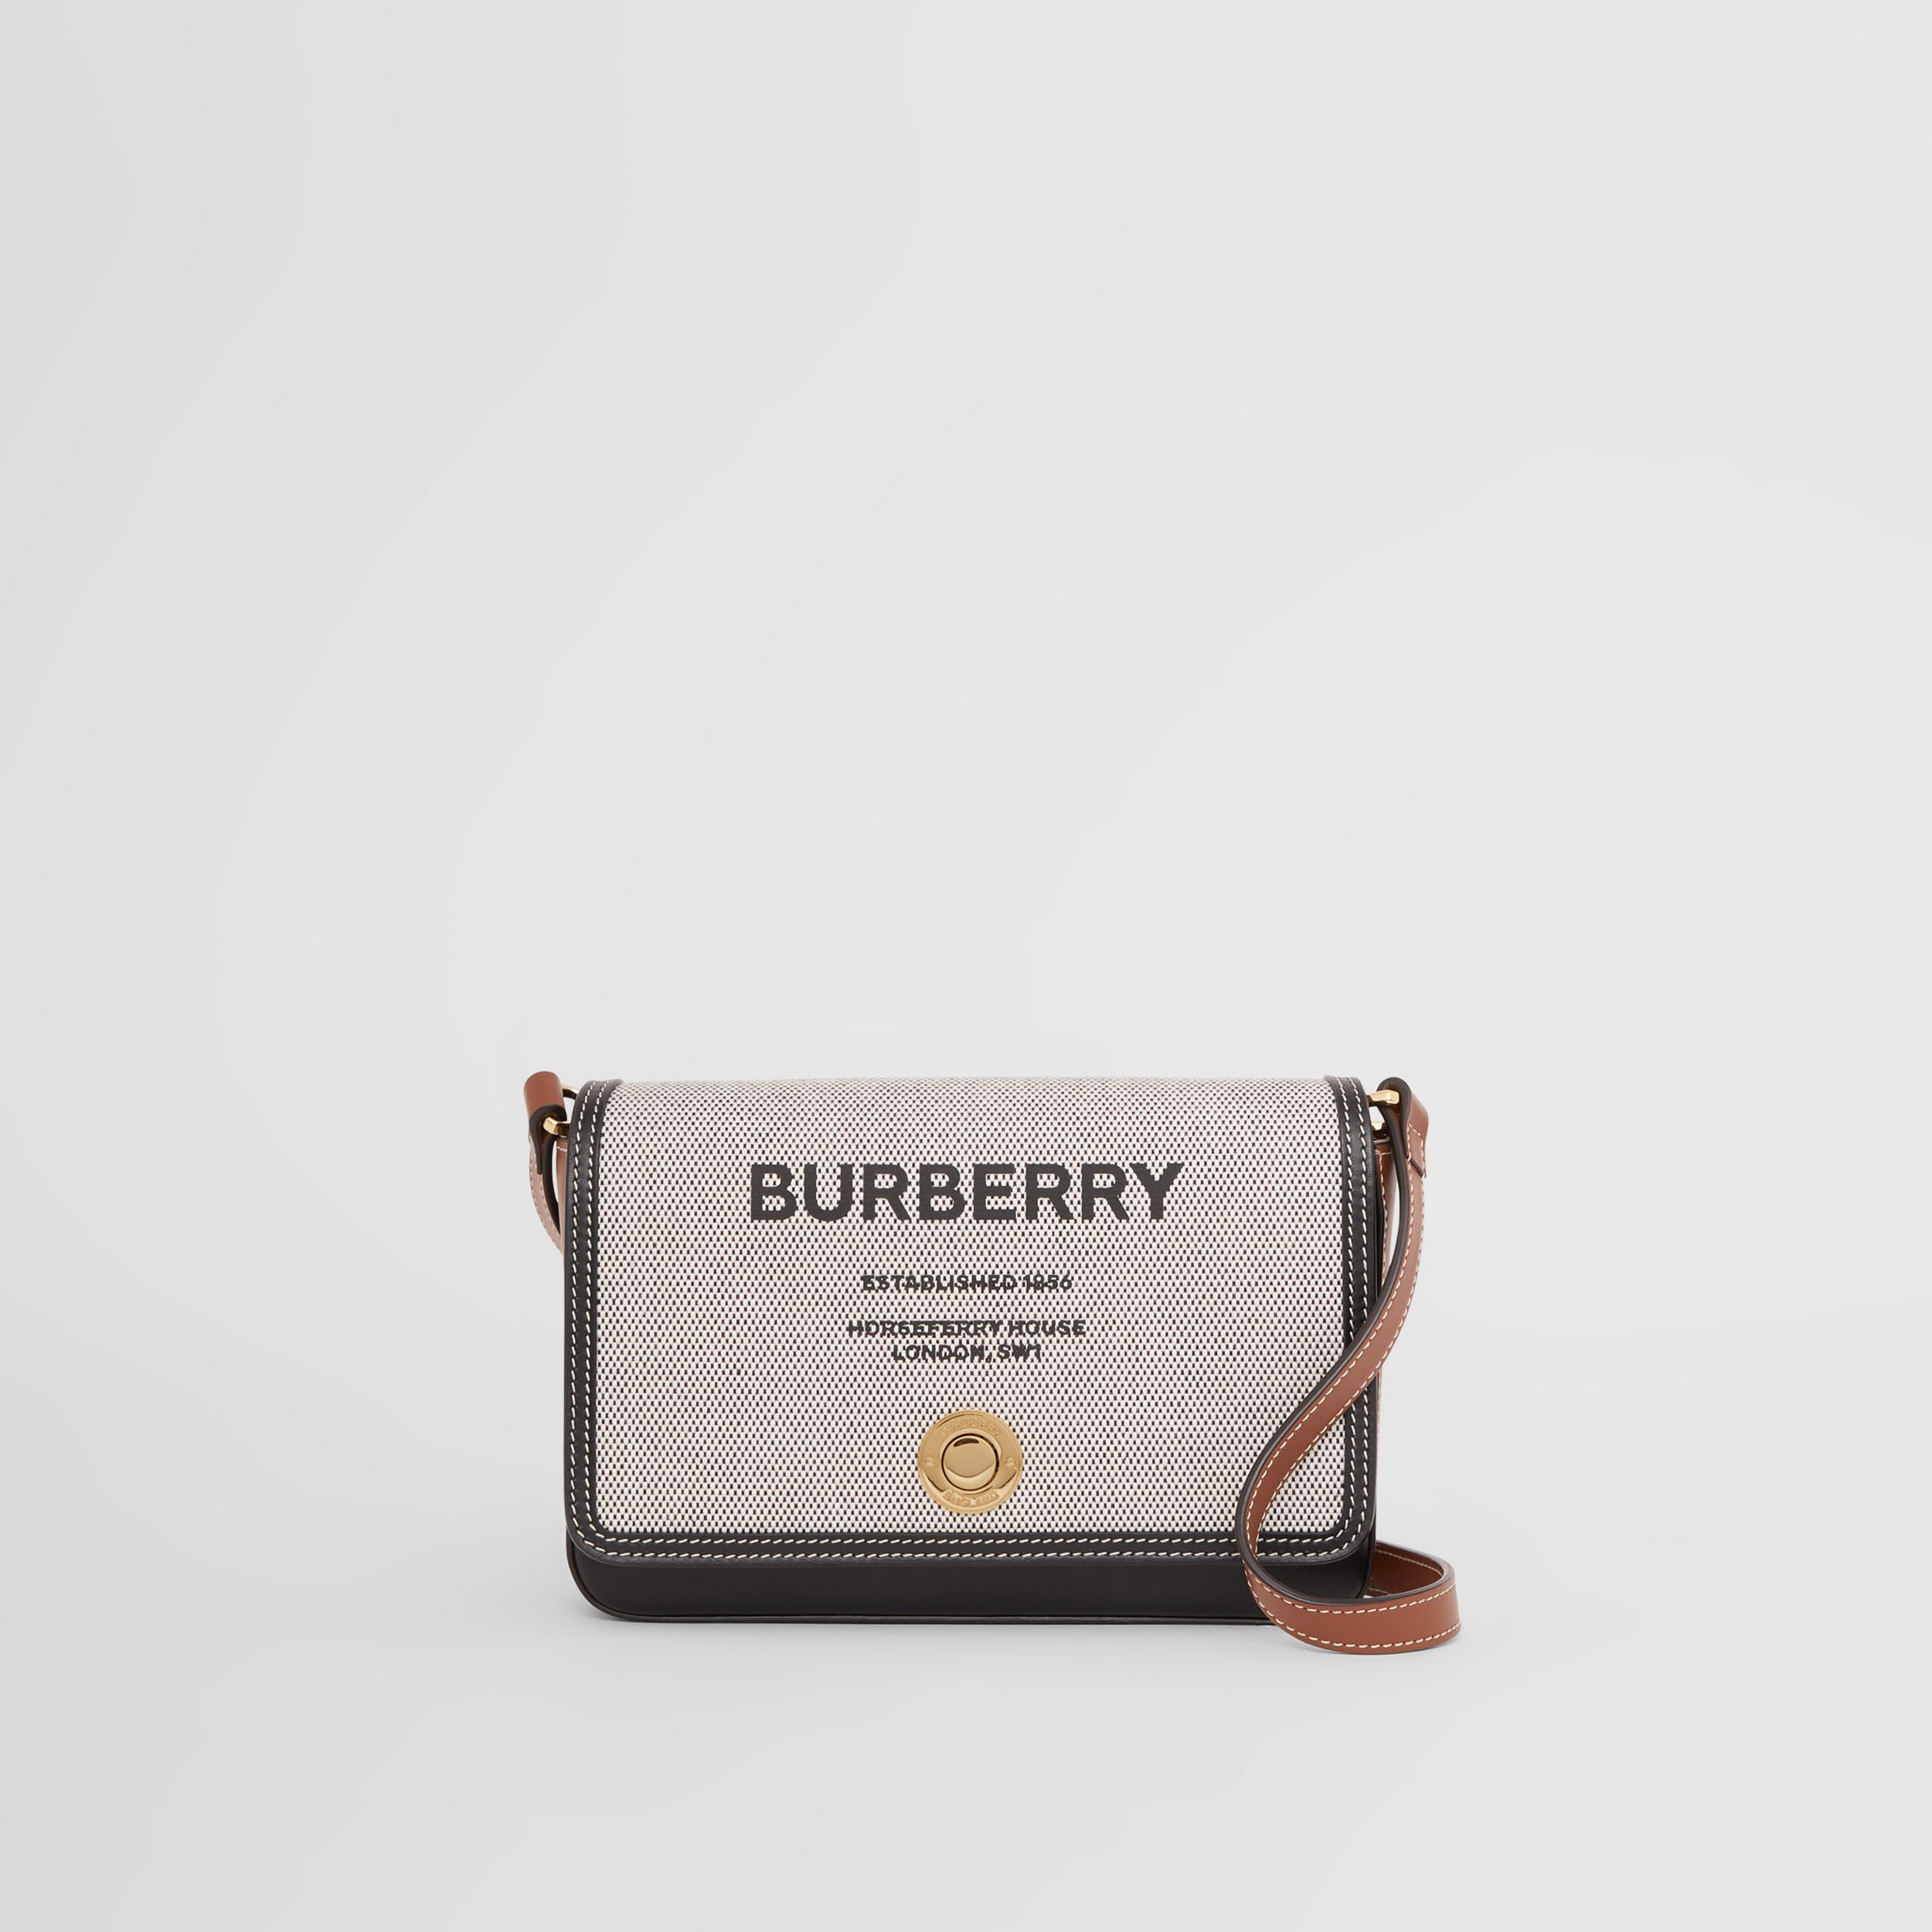 Horseferry Print Canvas and Leather Crossbody Bag in Black/tan - Women | Burberry - 1